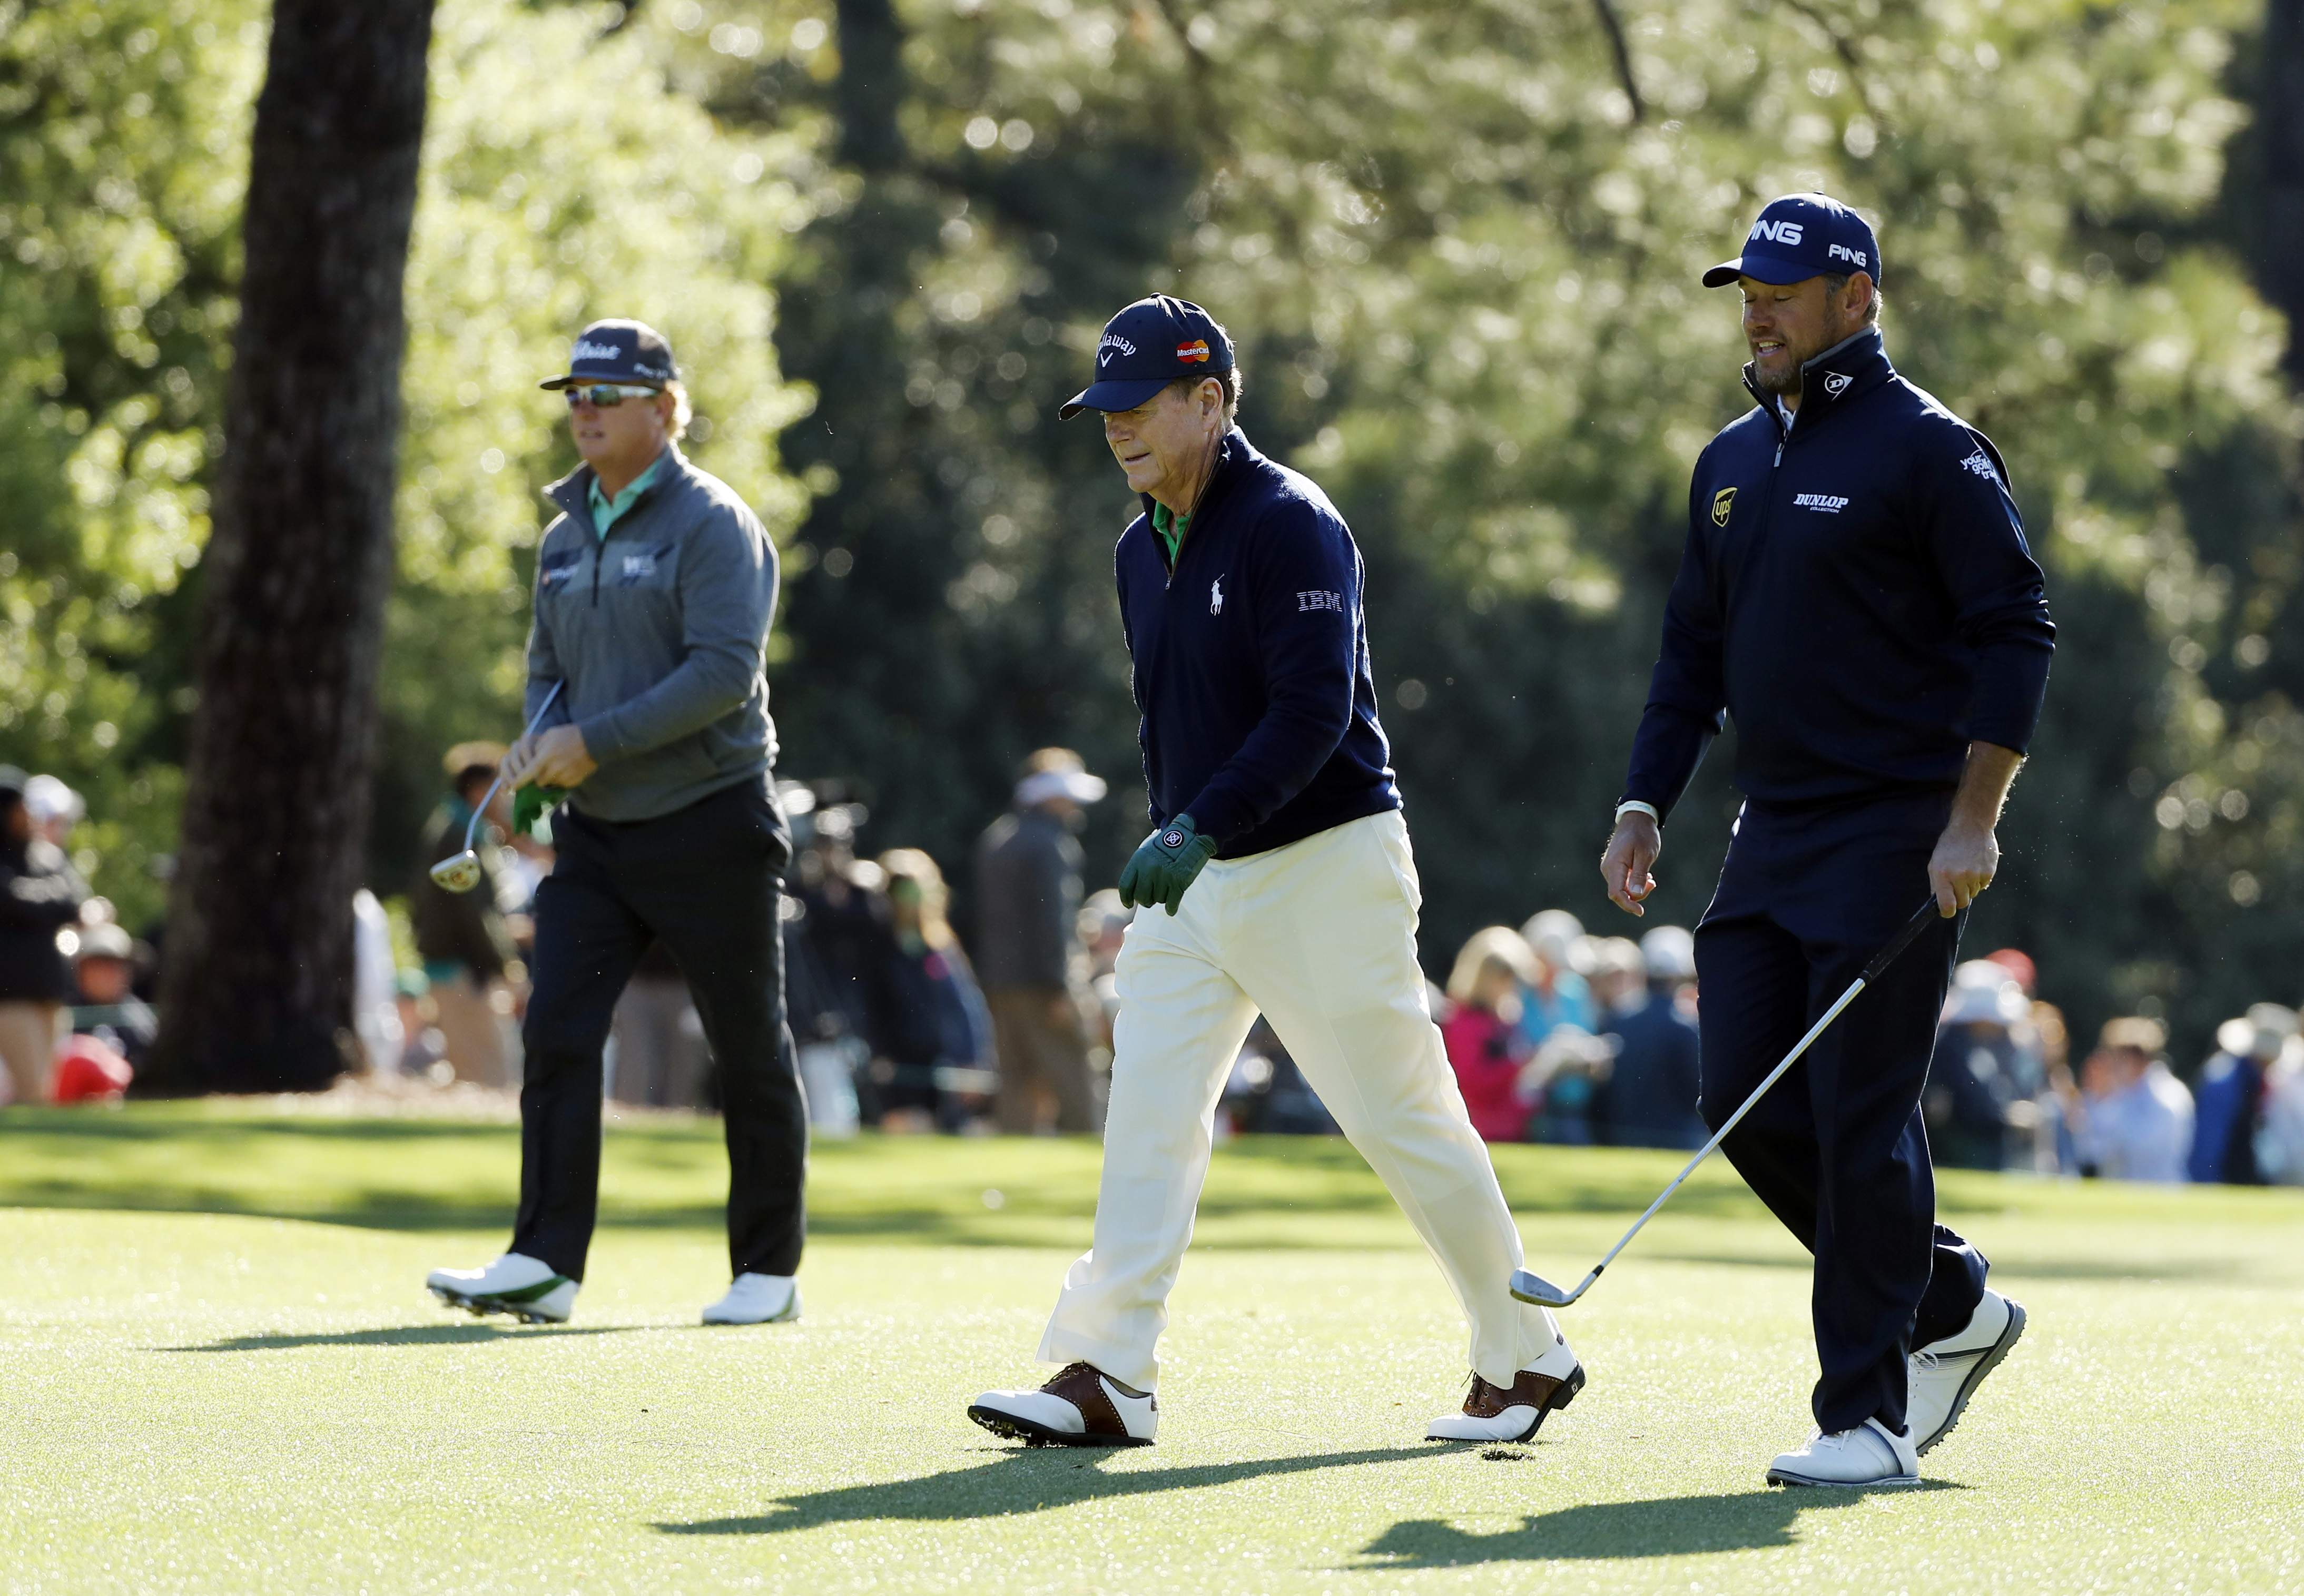 Tom Watson, center, walks with Charley Hoffman, left and Lee Westwood, of England, on the first fairway during the first round of the Masters golf tournament Thursday, April 7, 2016, in Augusta, Ga. (AP Photo/Matt Slocum)